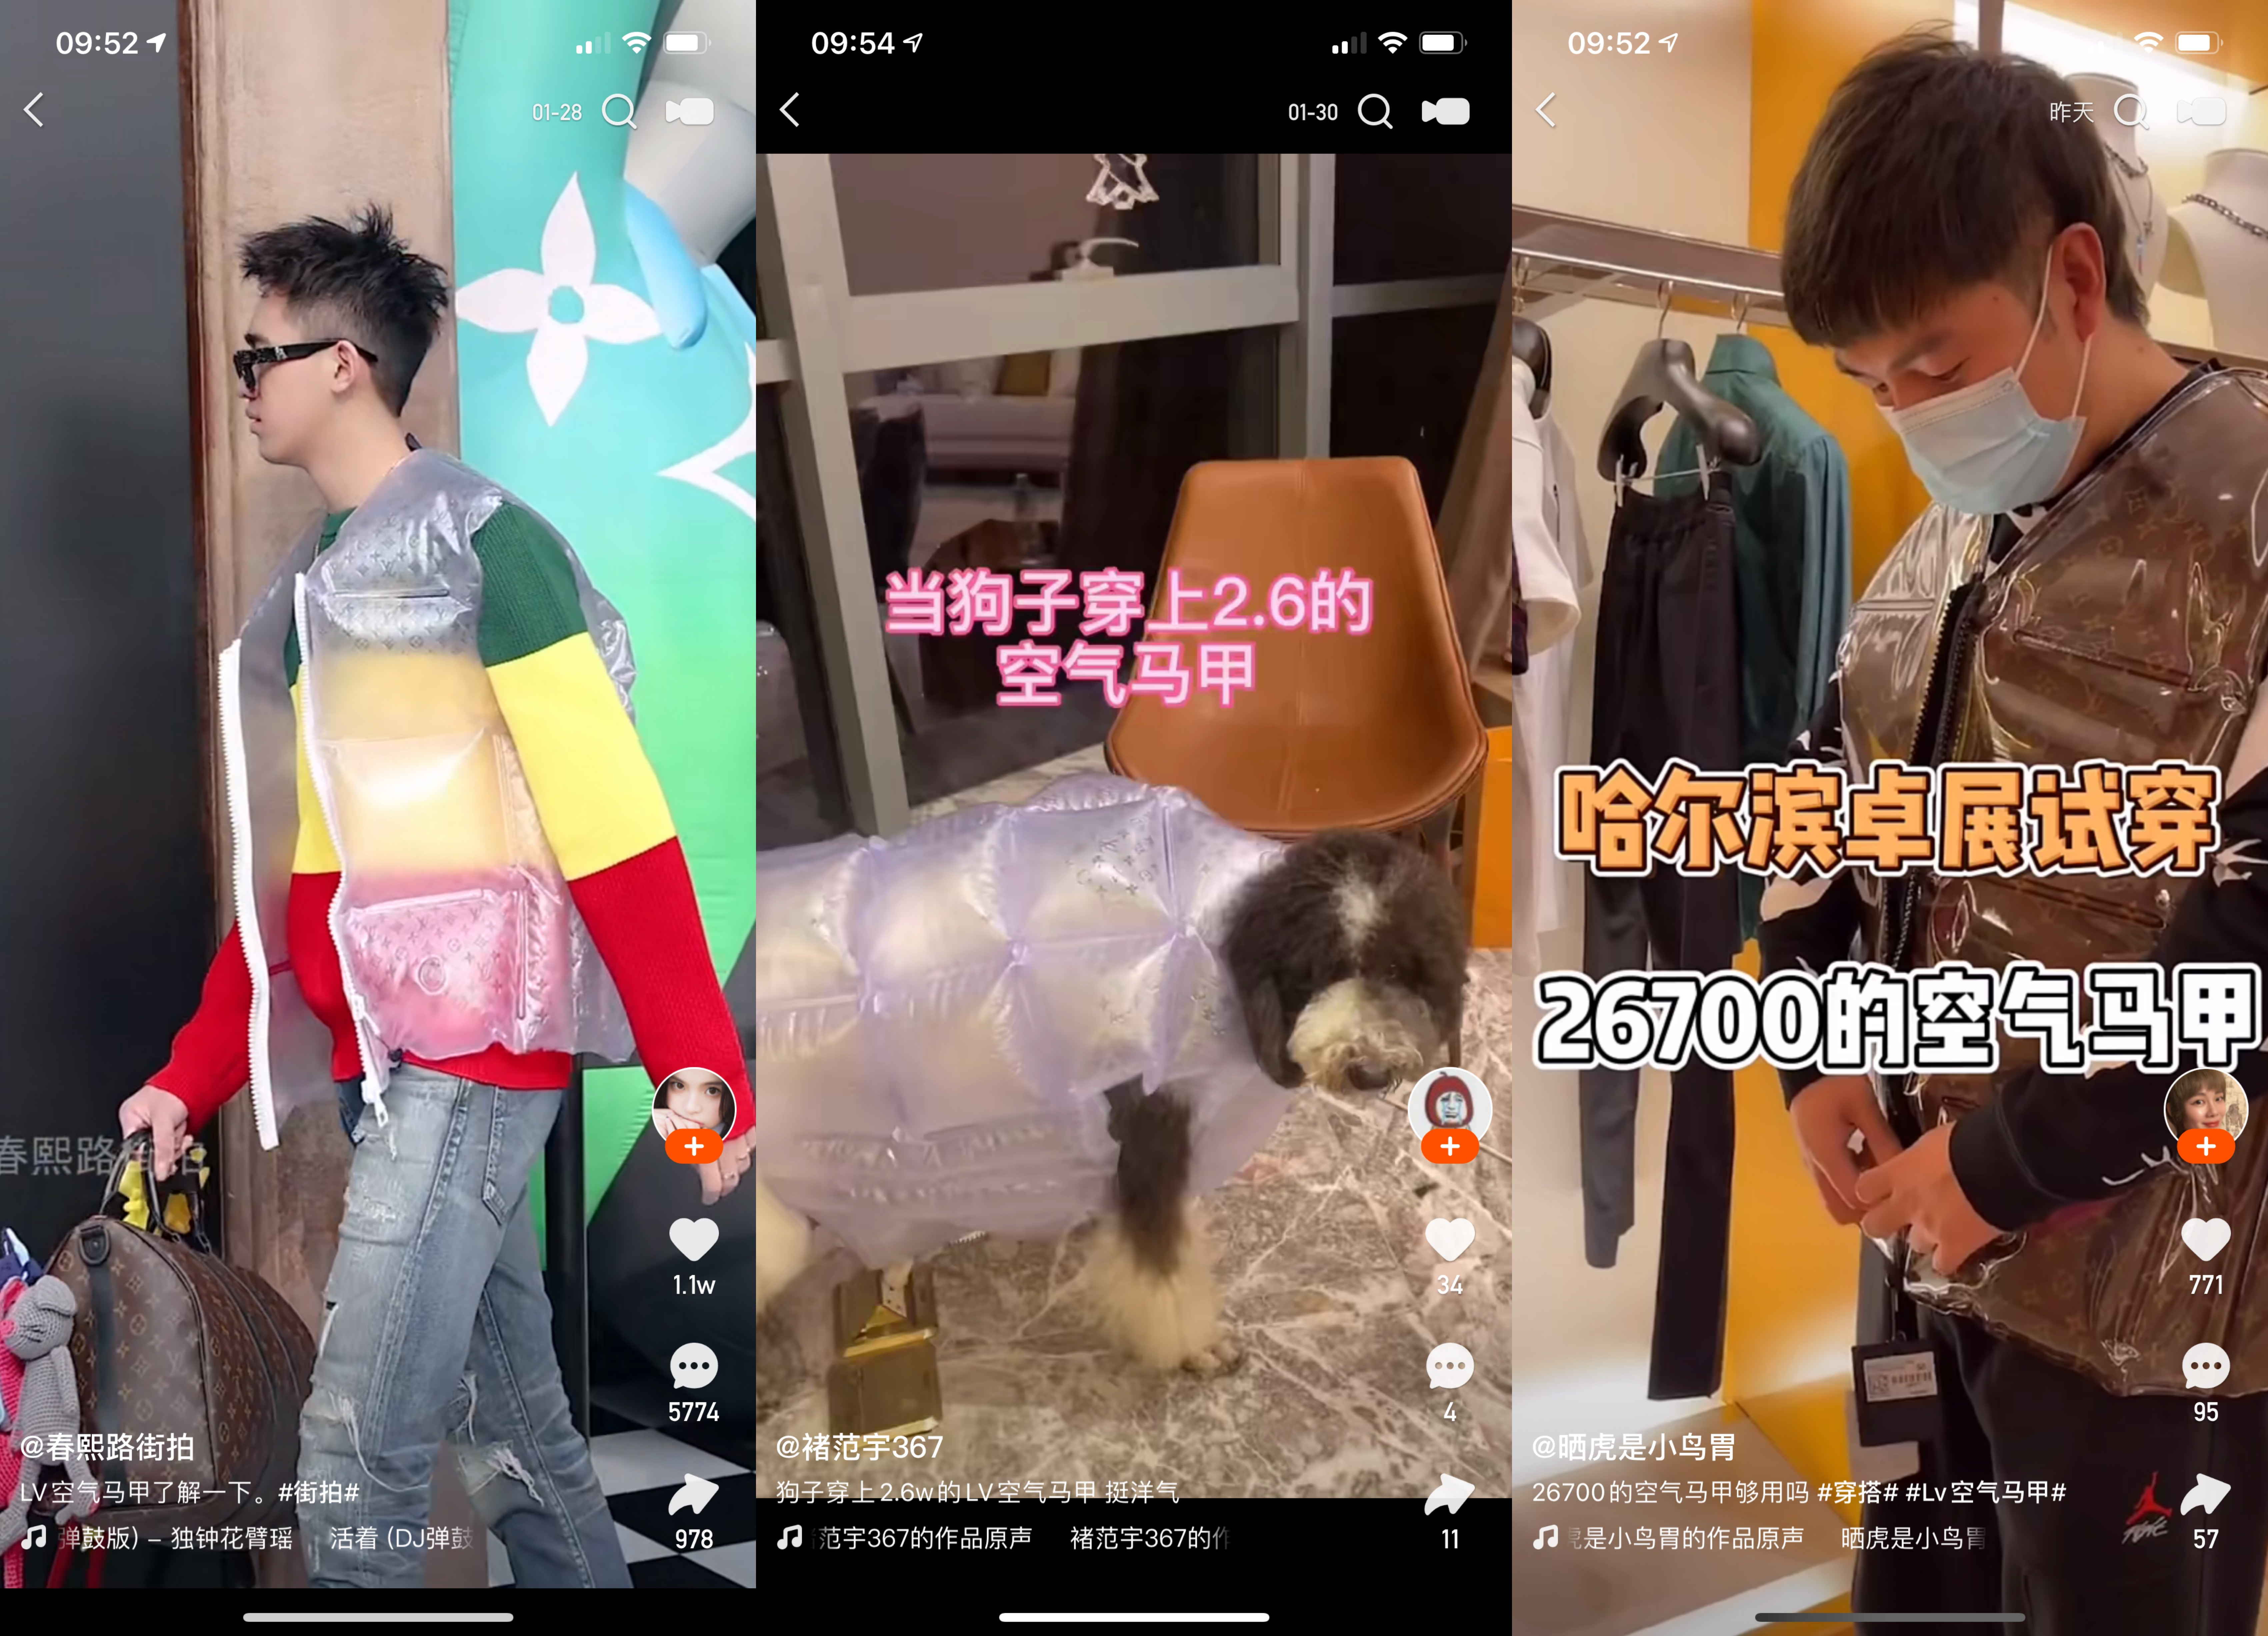 Louis Vuitton's inflatable gilet went viral on Chinese social media